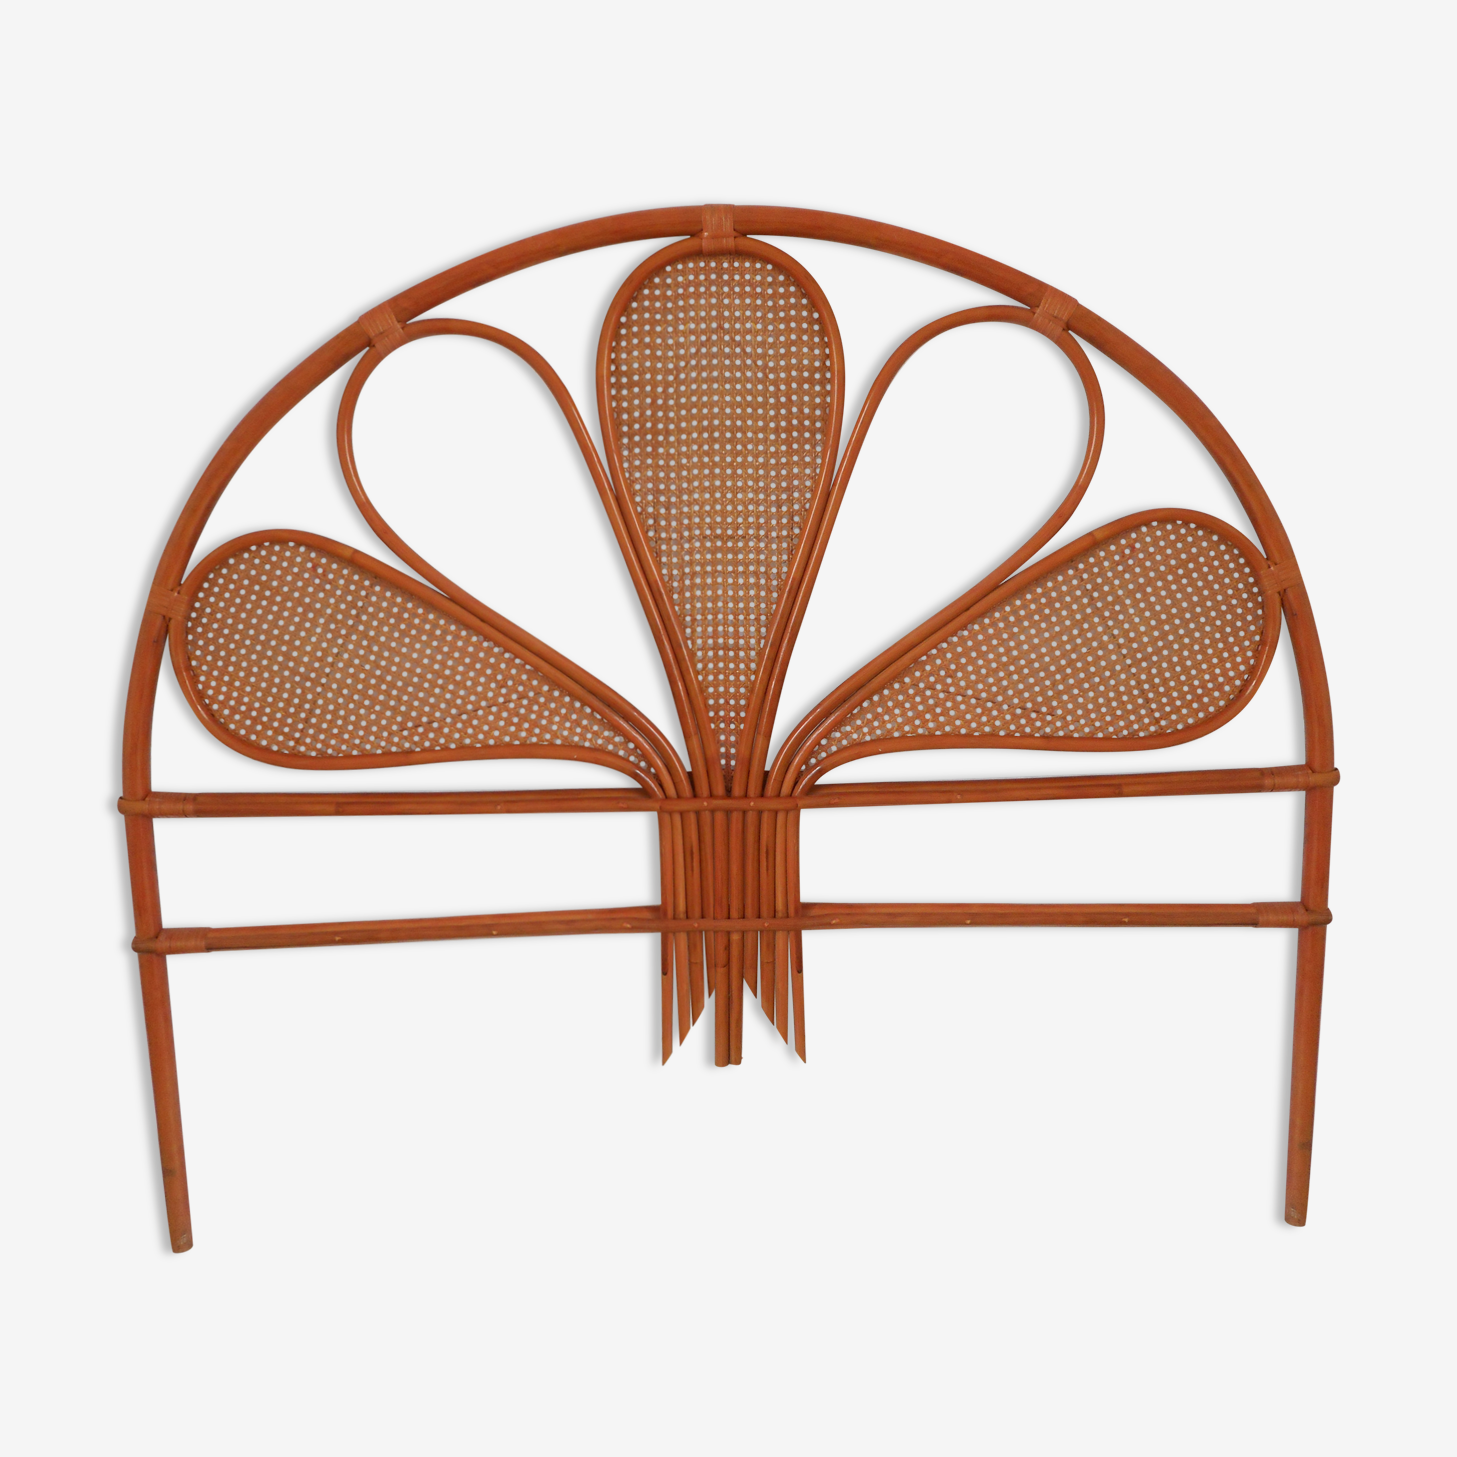 Headboard rattan and caning vintage